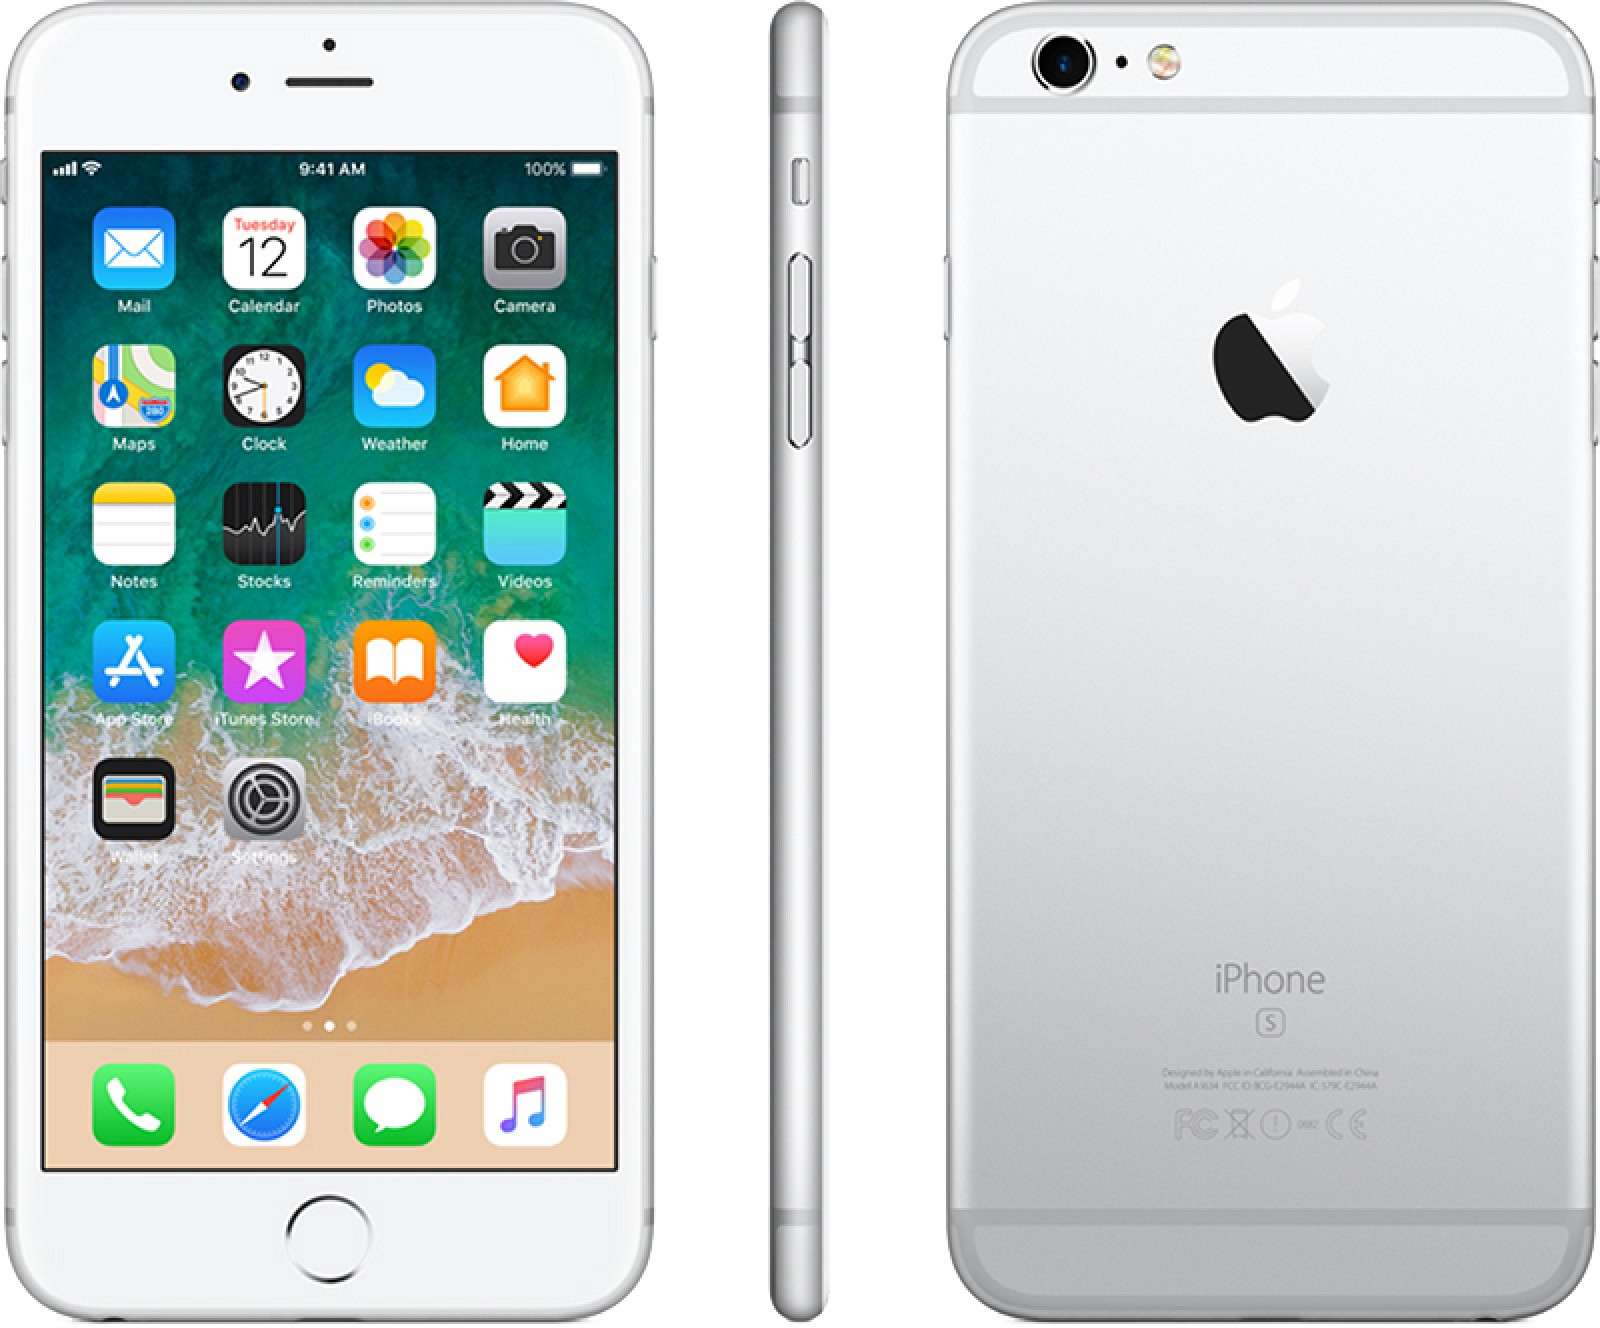 ed0a6d2899e Apple May Replace Some iPhone 6 Plus Models Needing Whole-Device Repairs  With iPhone 6s Plus Through March